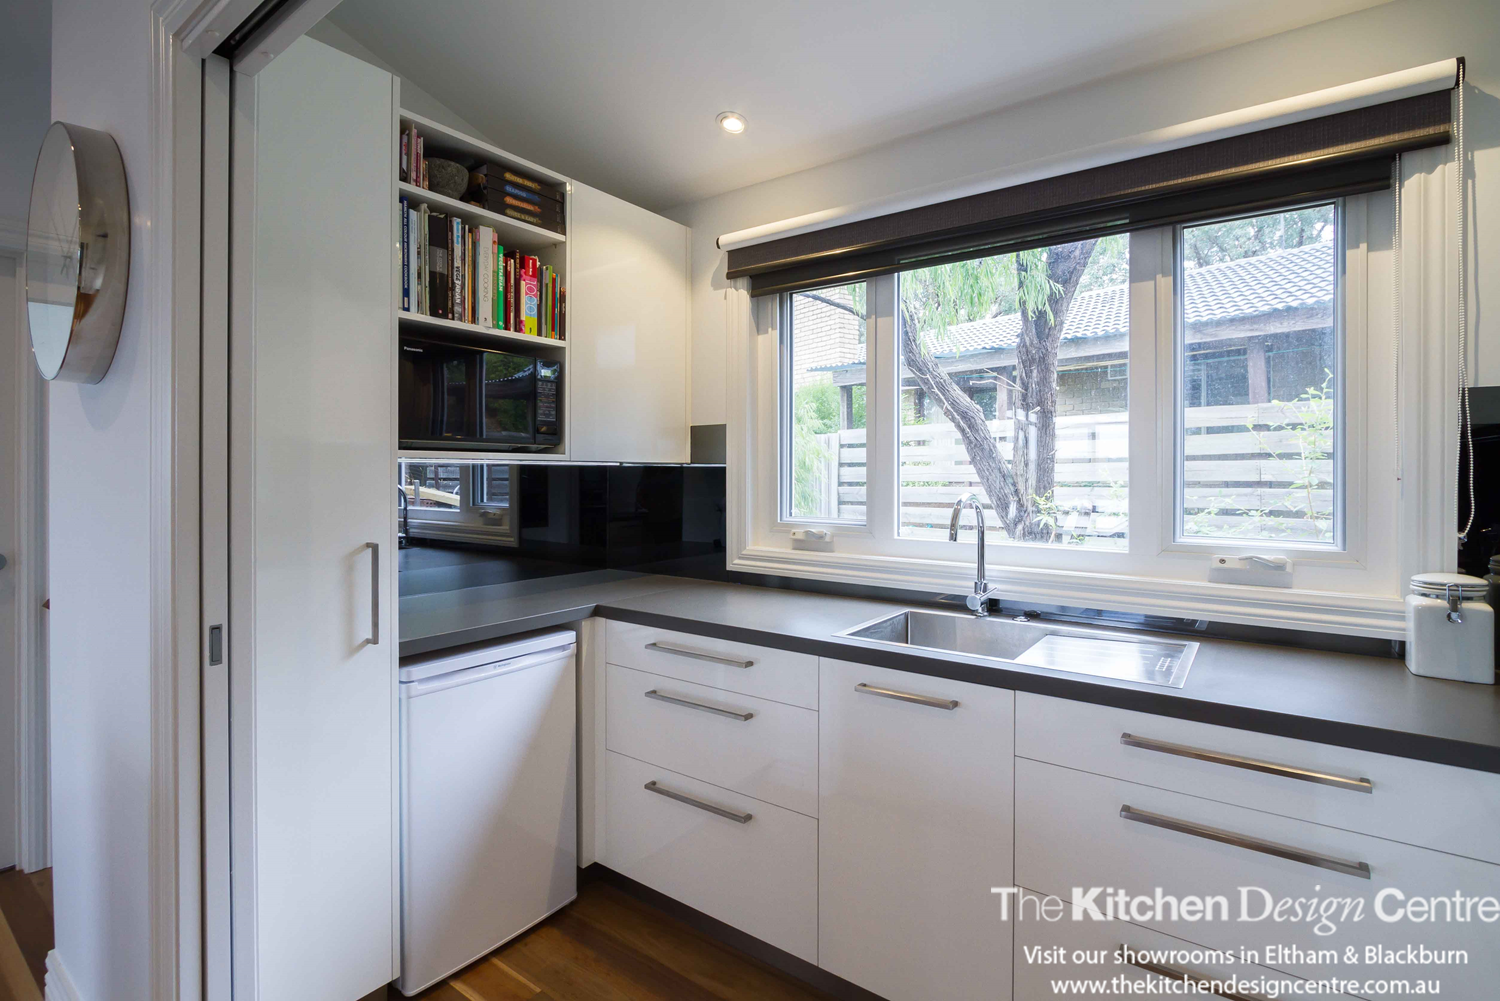 A modern sleek family kitchen designed with lots of storage and